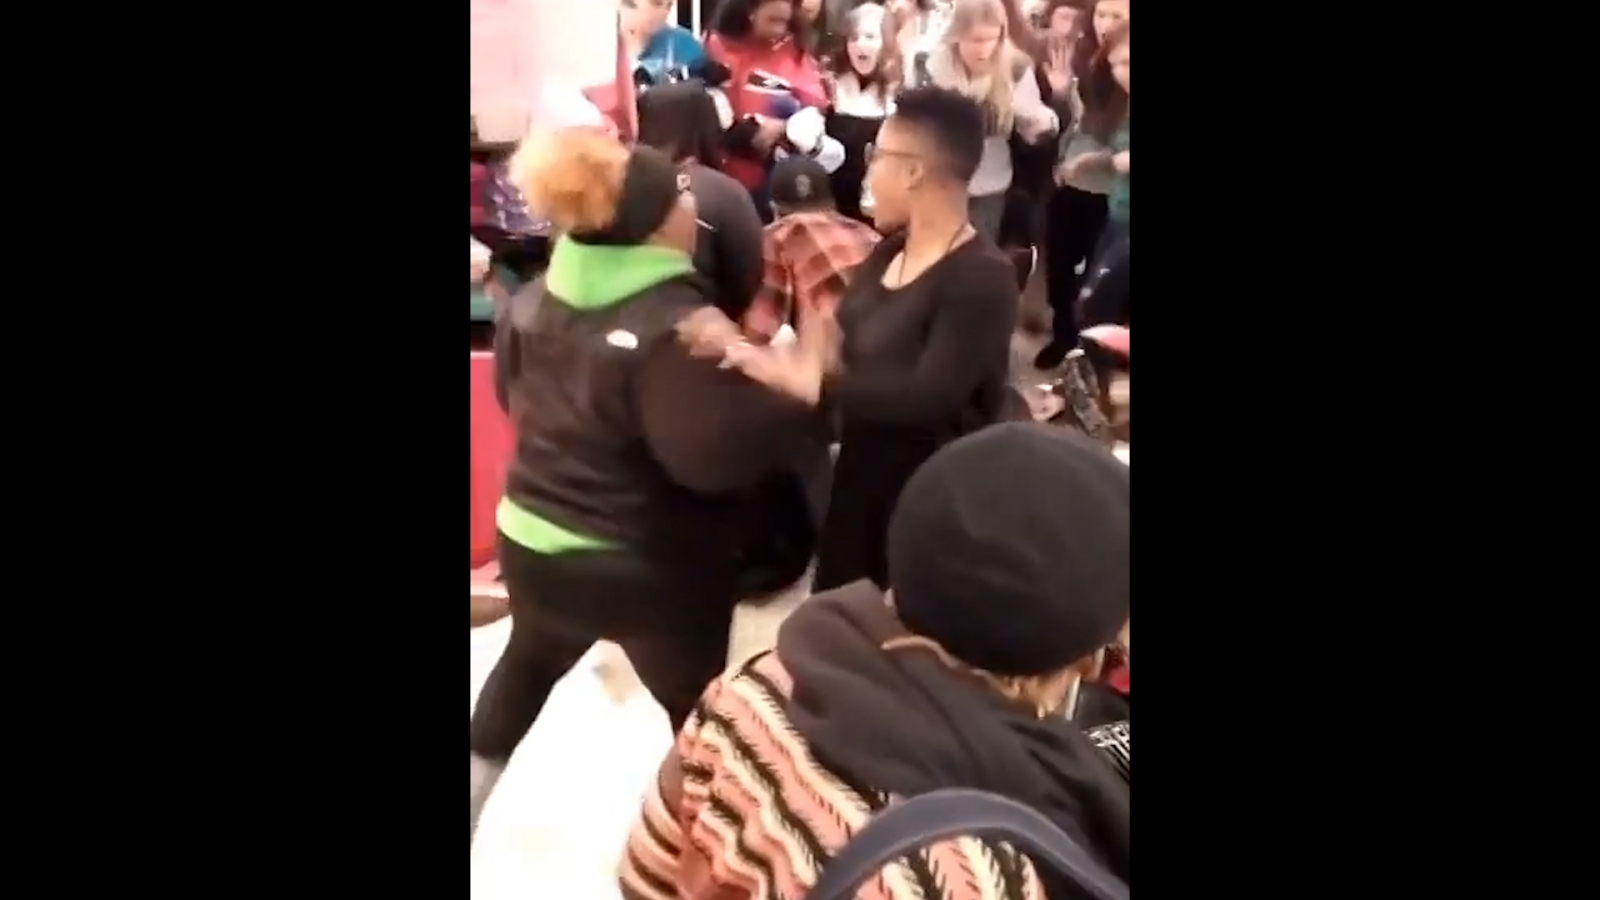 Black Friday Brawl: Watch Two Ladies Fight Over Lingerie in Victoria's Secret Store